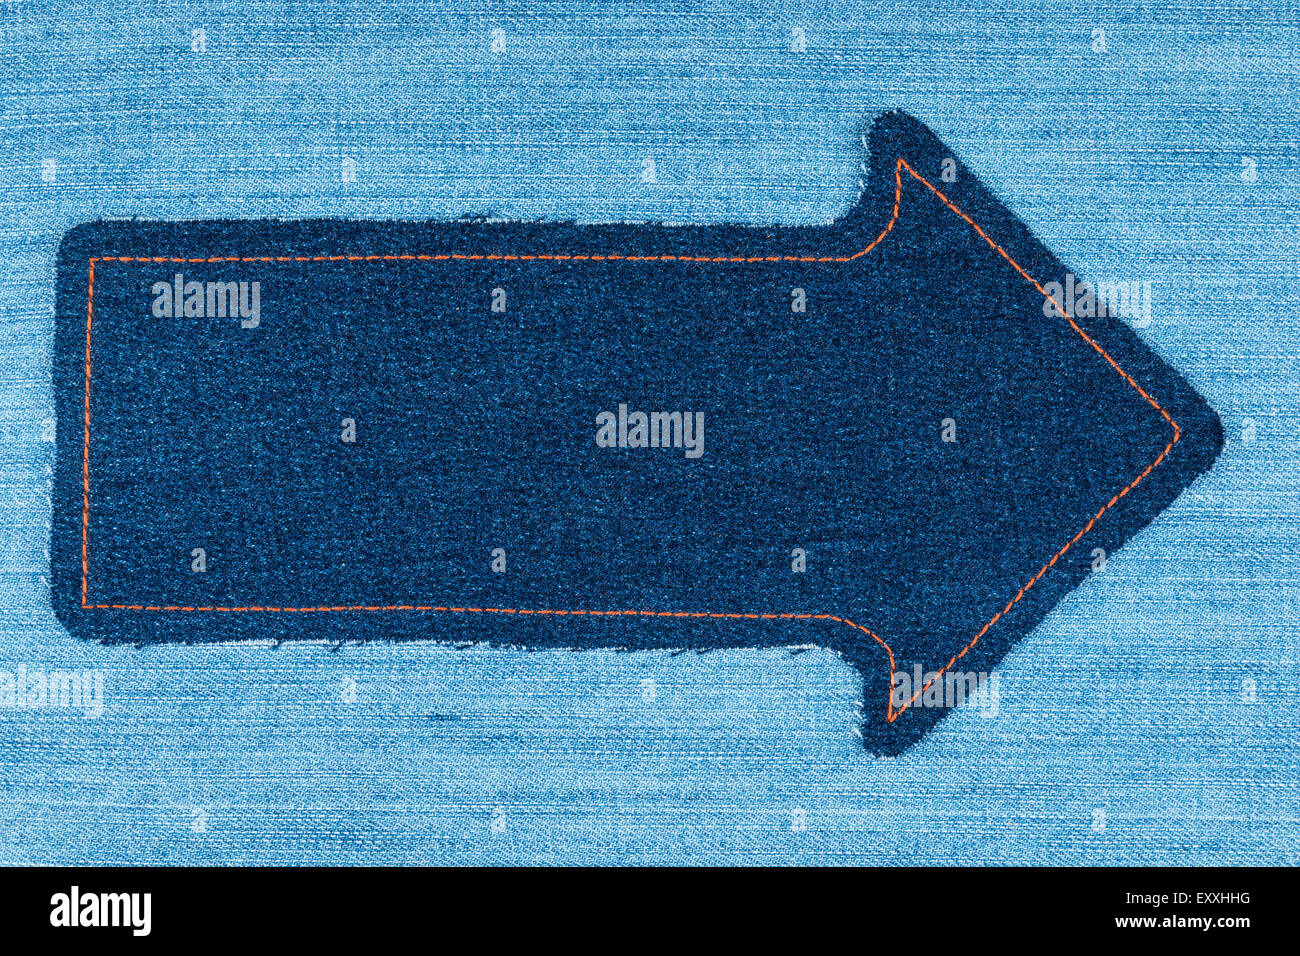 Pointer made of denim fabric with yellow stitching on for Space made of fabric